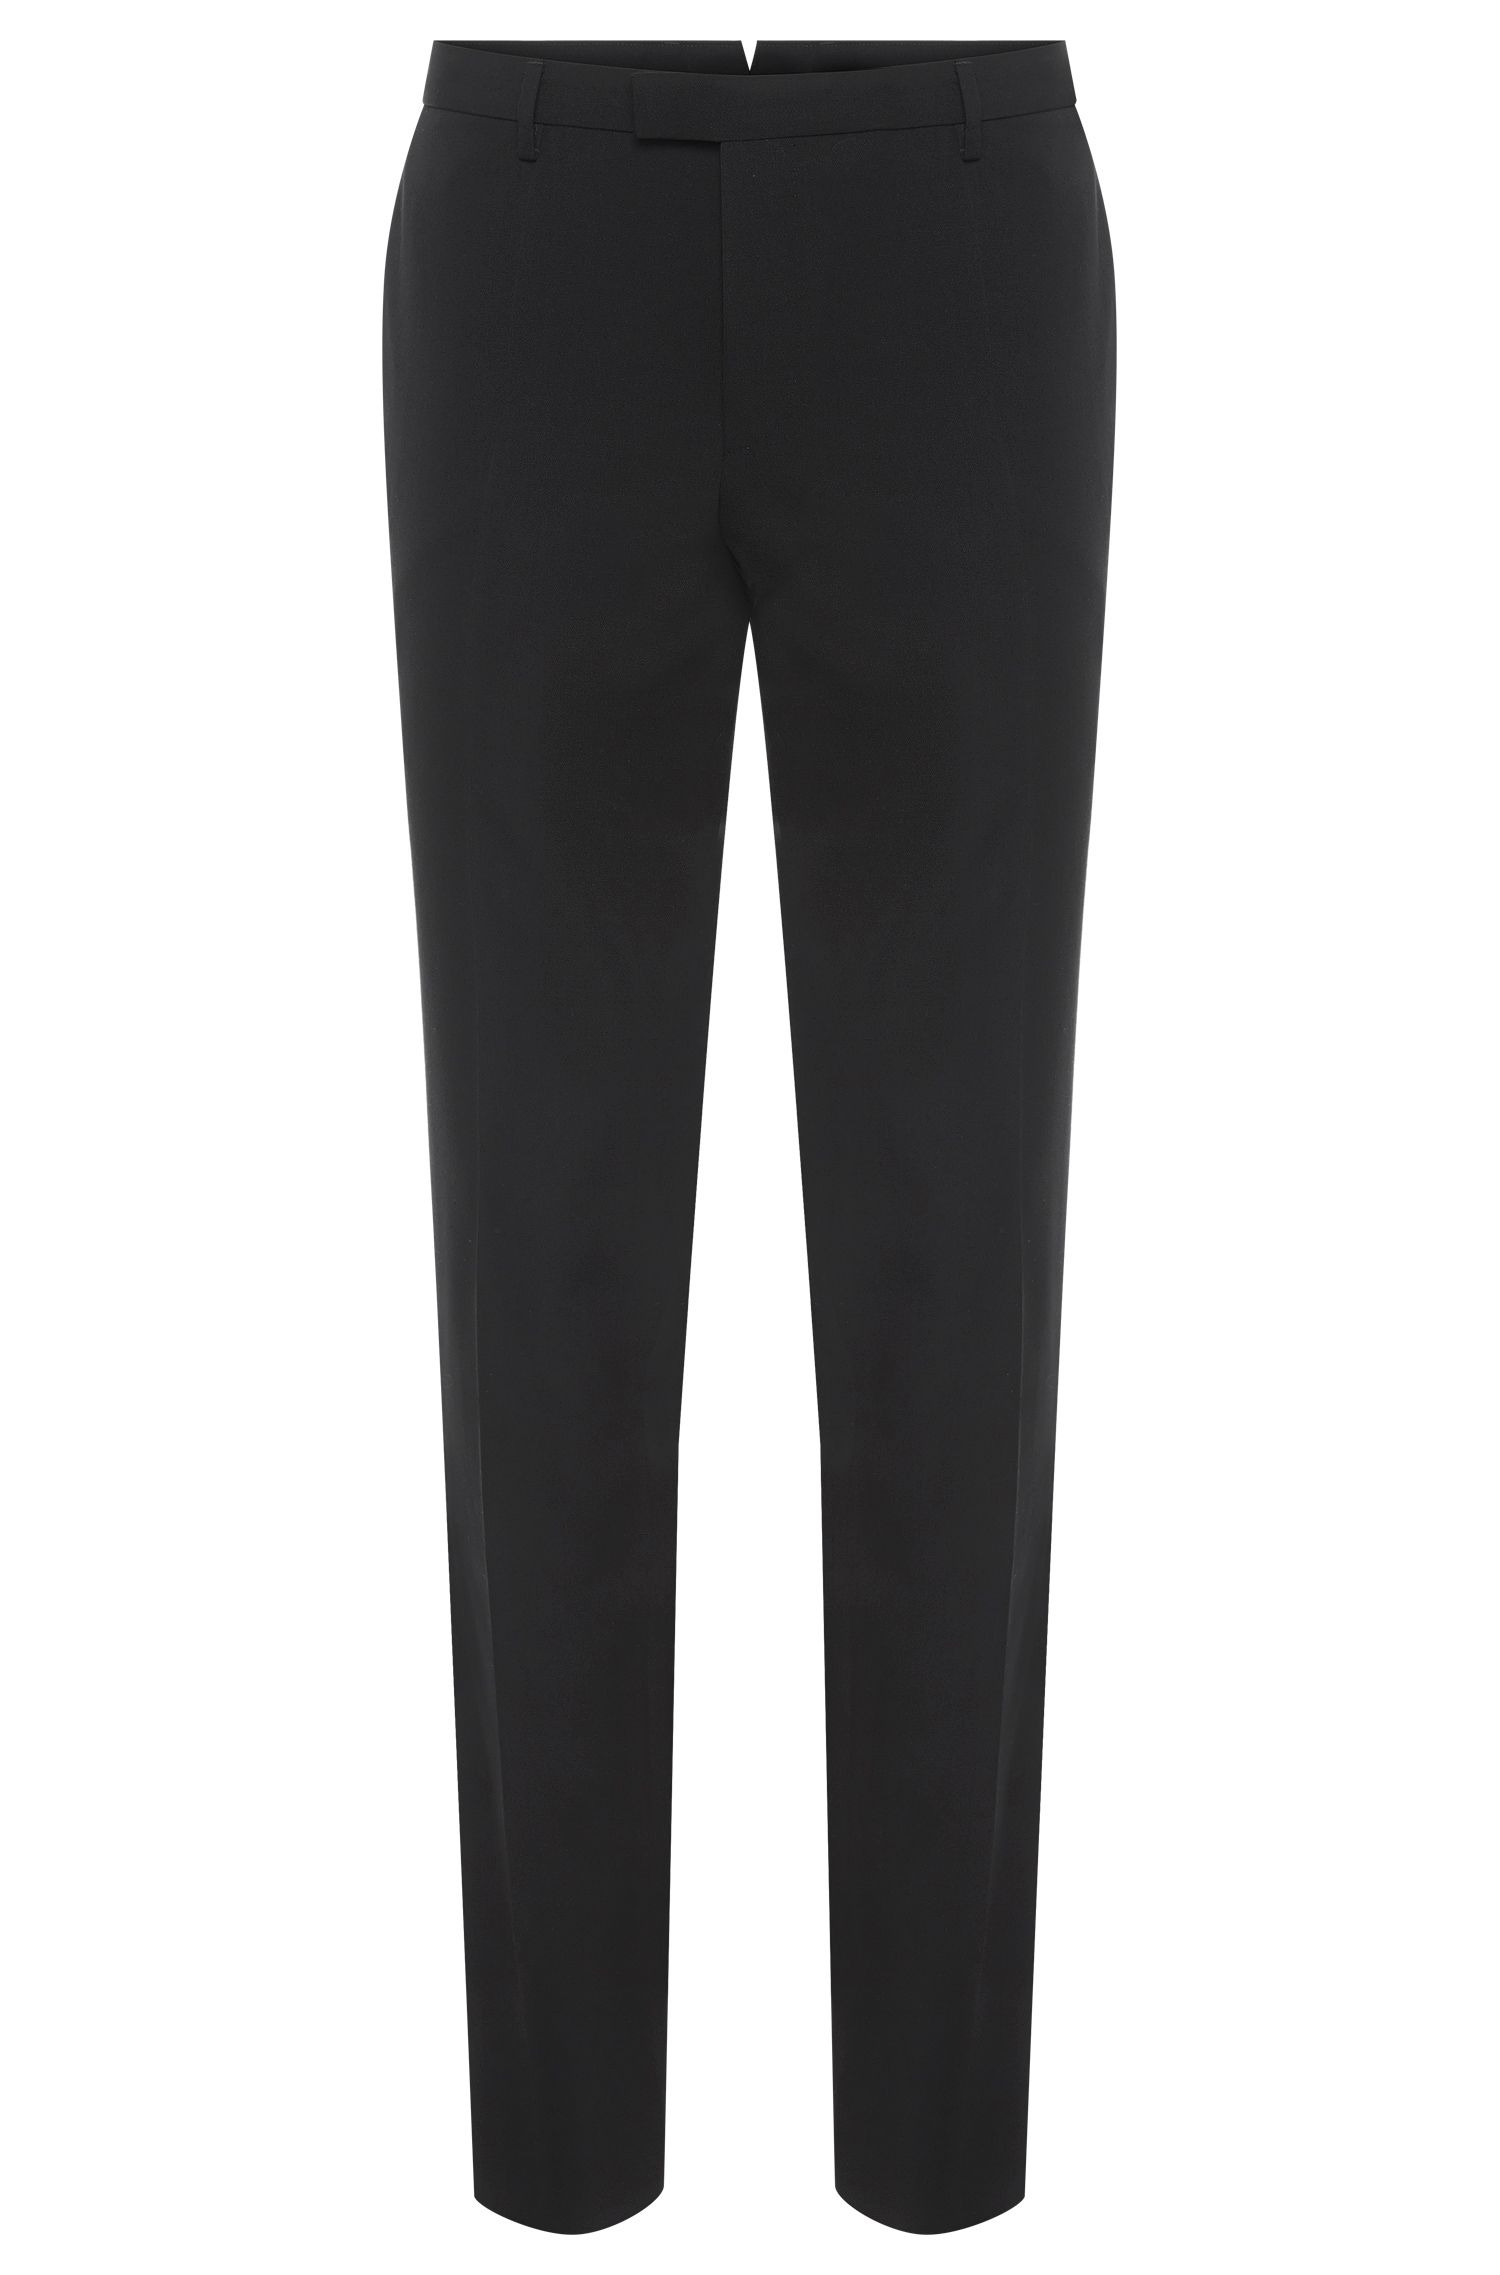 Pantalon Slim Fit Tailored en pure laine vierge : « T-Bale »